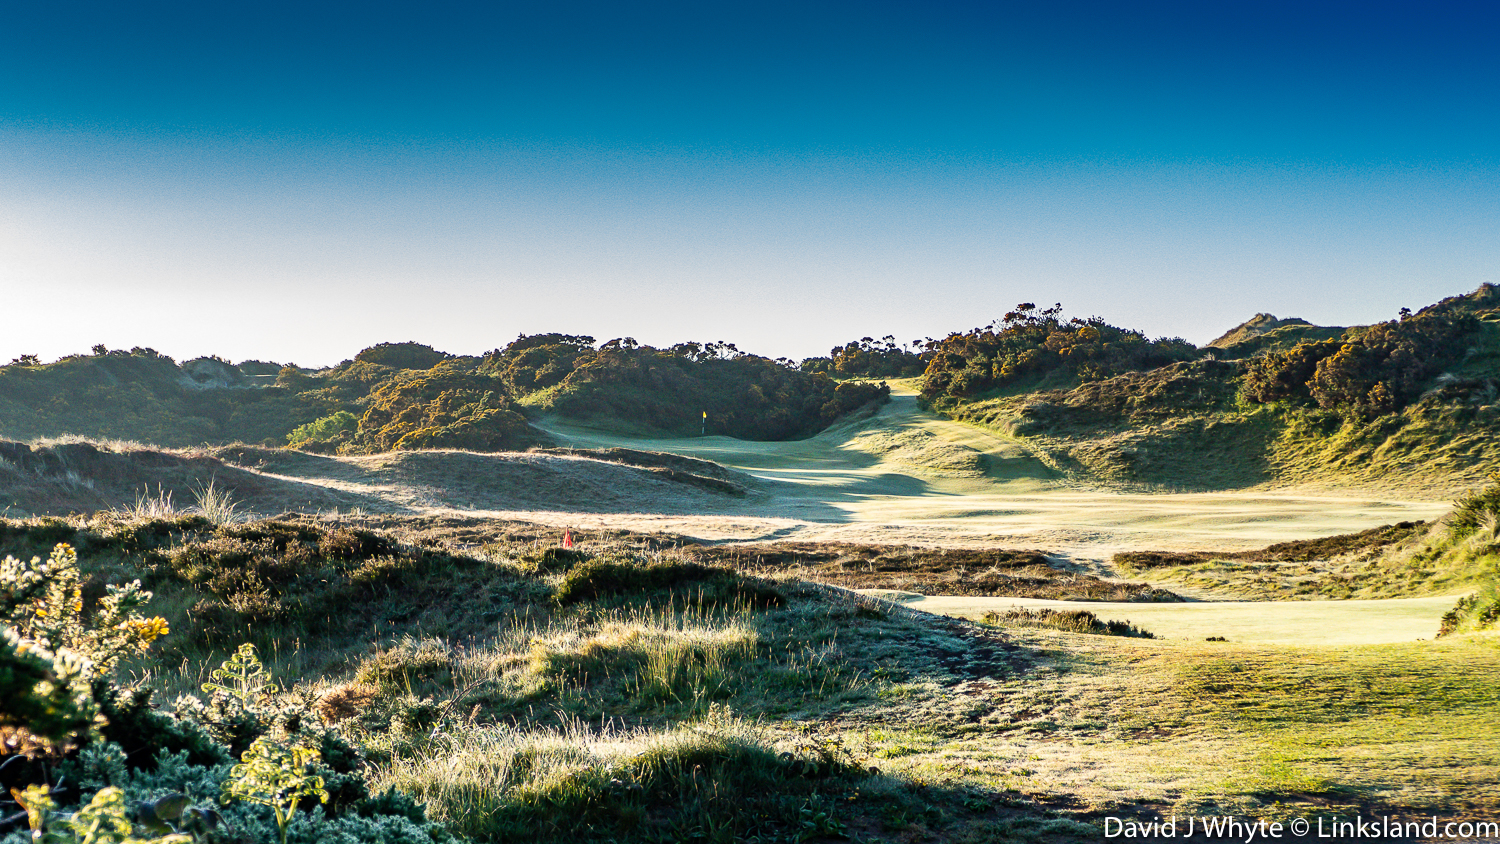 Annesley Links at Royal County Down